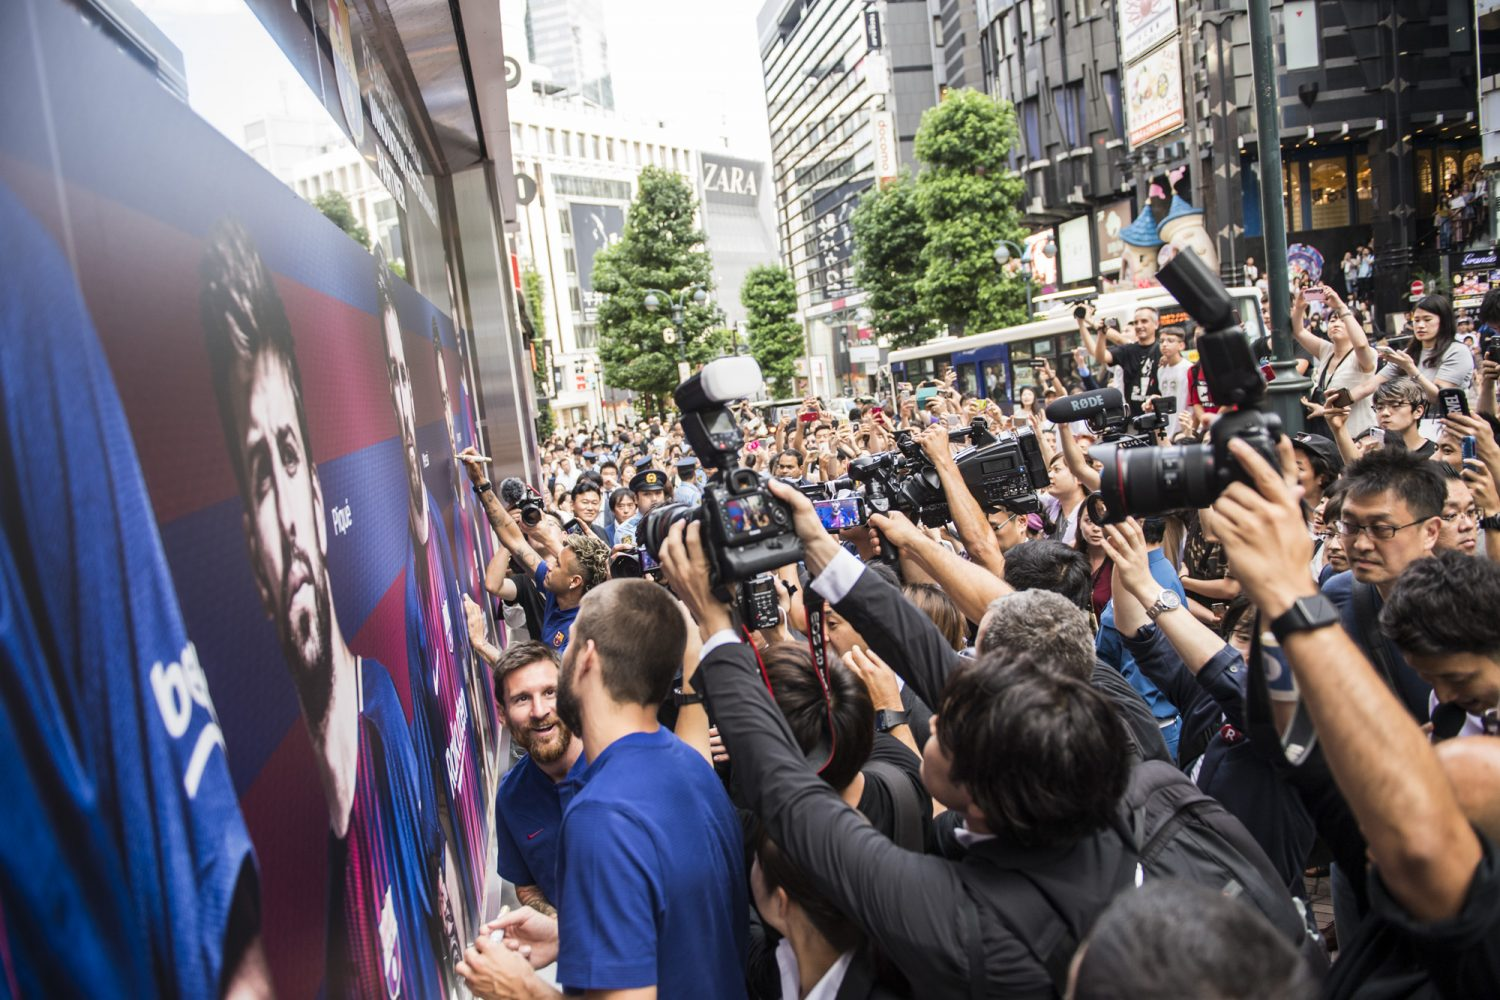 Messi and team draw crowds at surprise signing of Barca-themed cafe in Tokyo